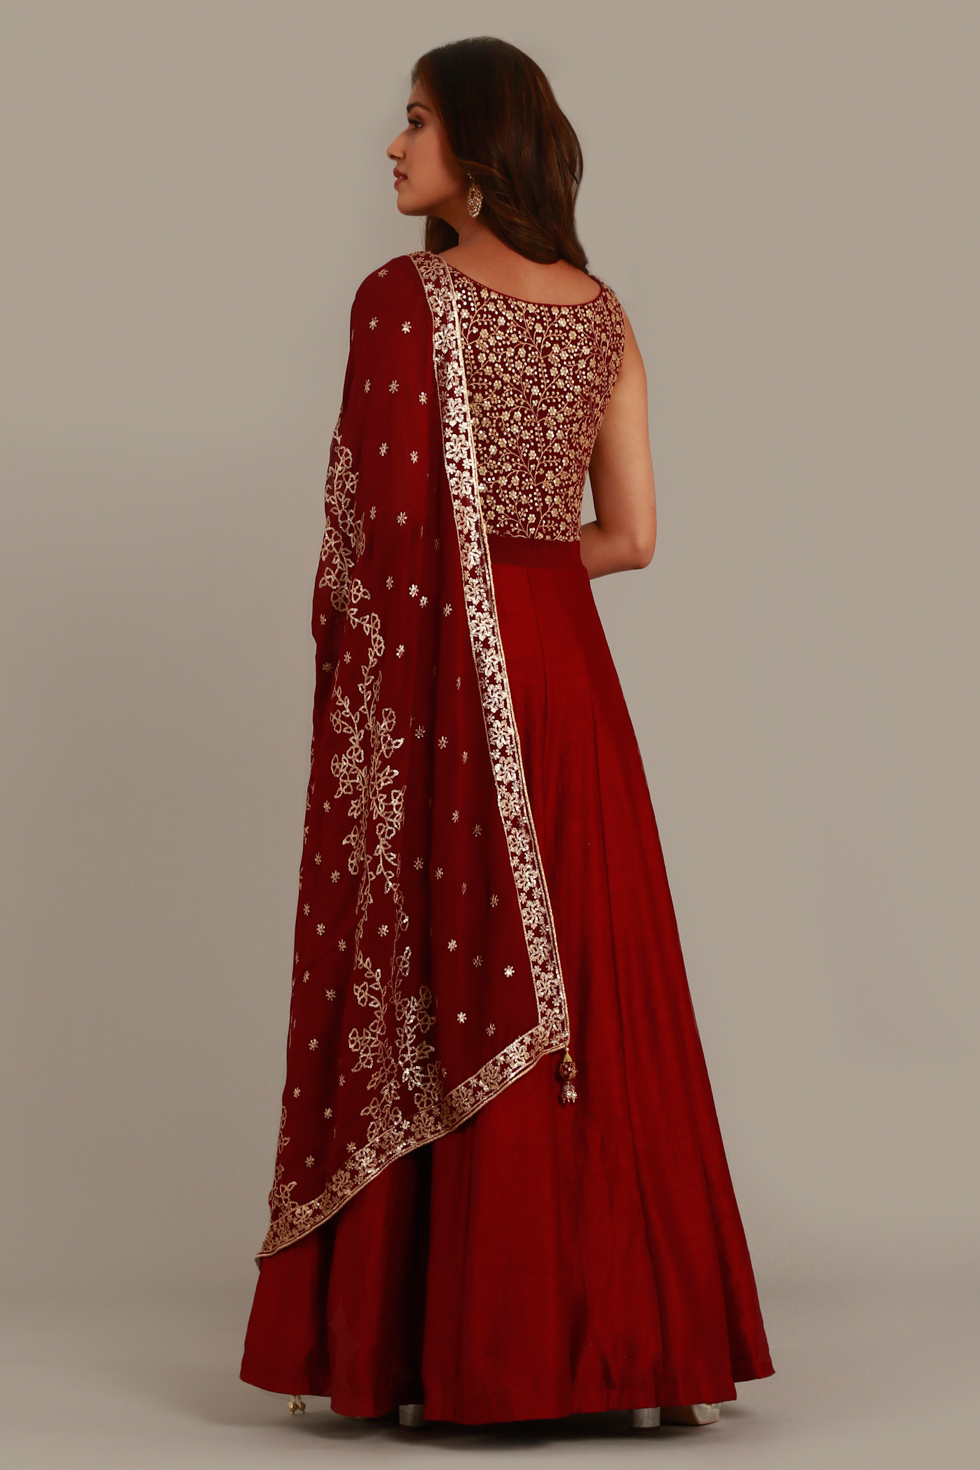 Maroon red Anarkali gown set with matching dupatta and gold embellishments